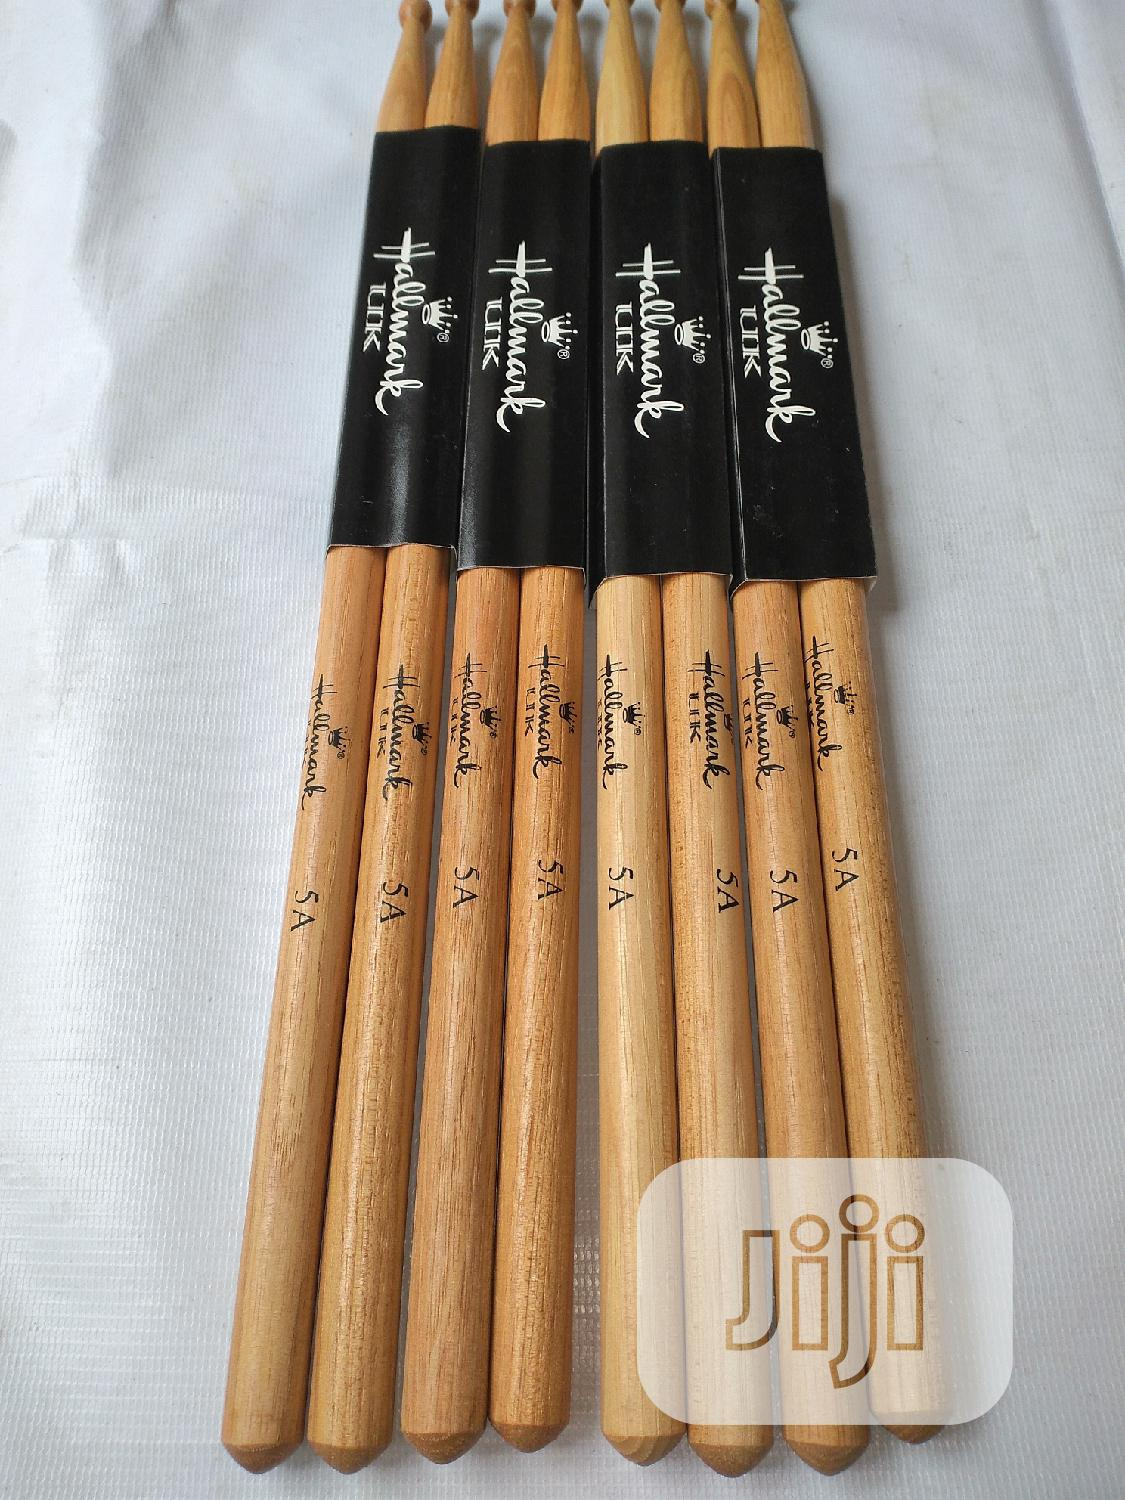 Hallmark-uk Selected Hickory Drum Sticks   Musical Instruments & Gear for sale in Ojo, Lagos State, Nigeria